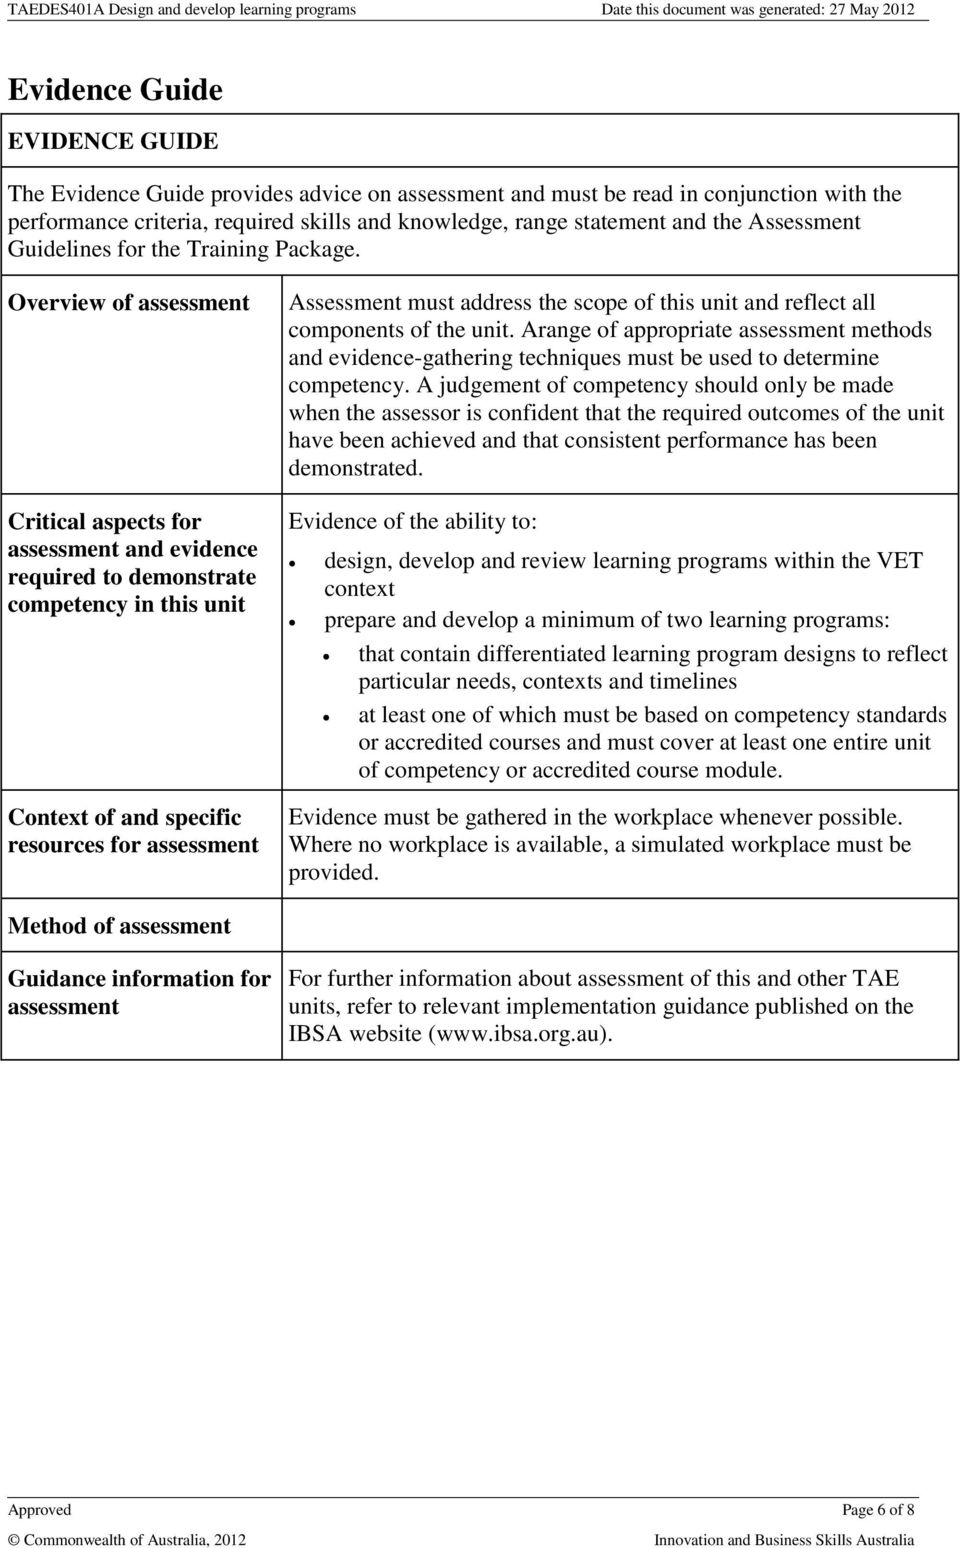 Overview of assessment Critical aspects for assessment and evidence required to demonstrate competency in this unit Context of and specific resources for assessment Assessment must address the scope